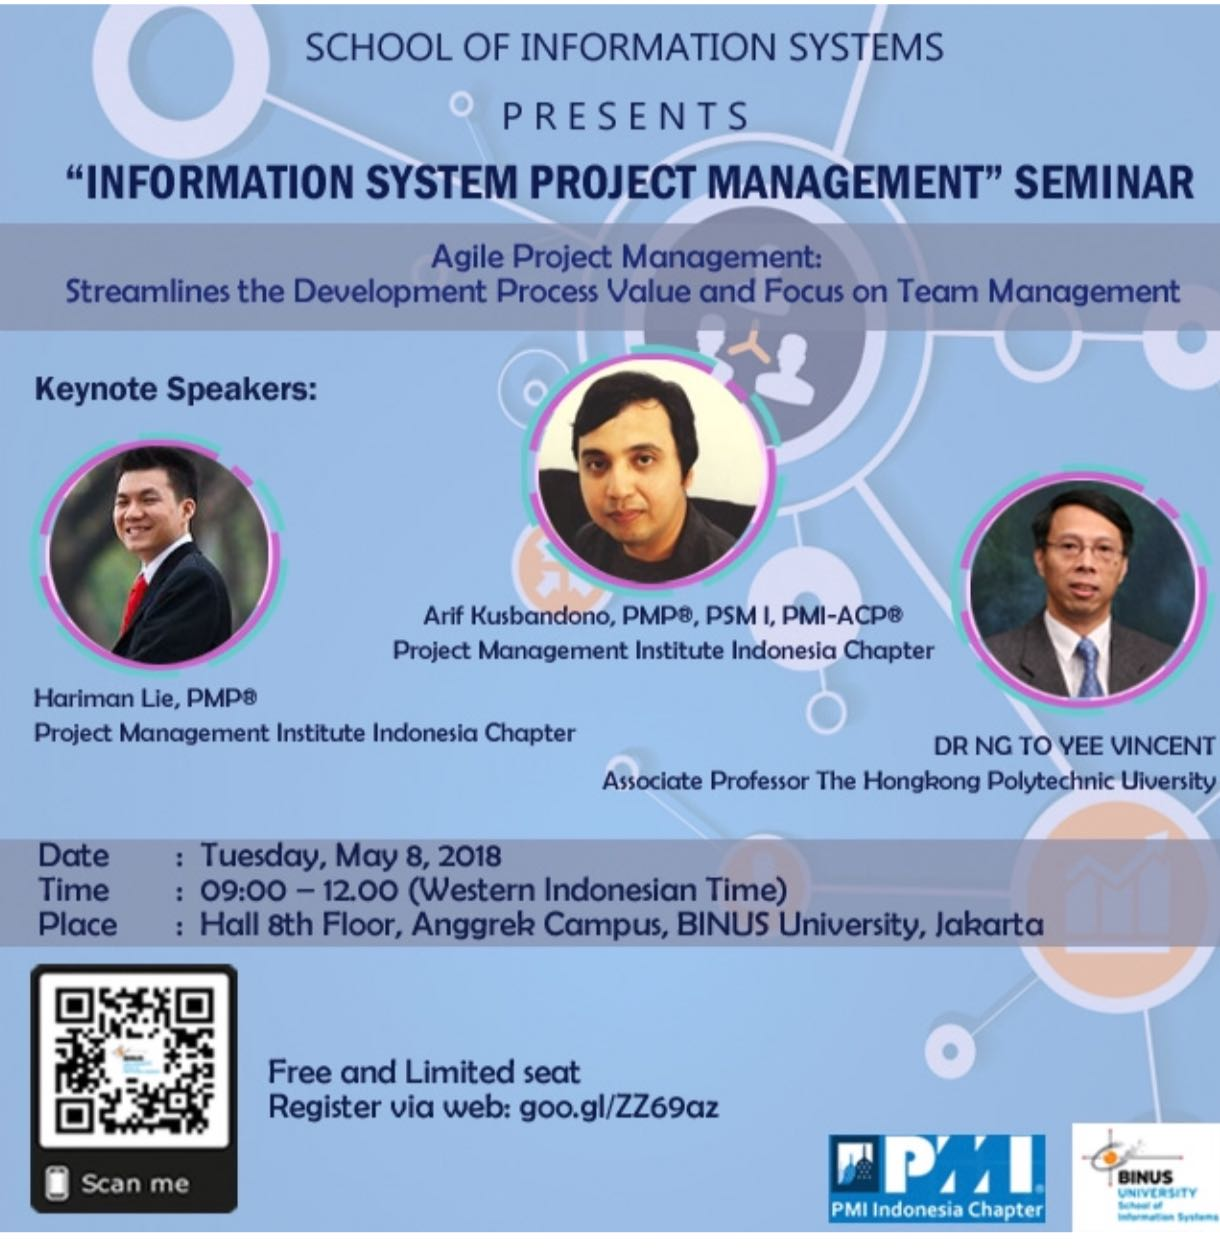 Information System Project Management seminar